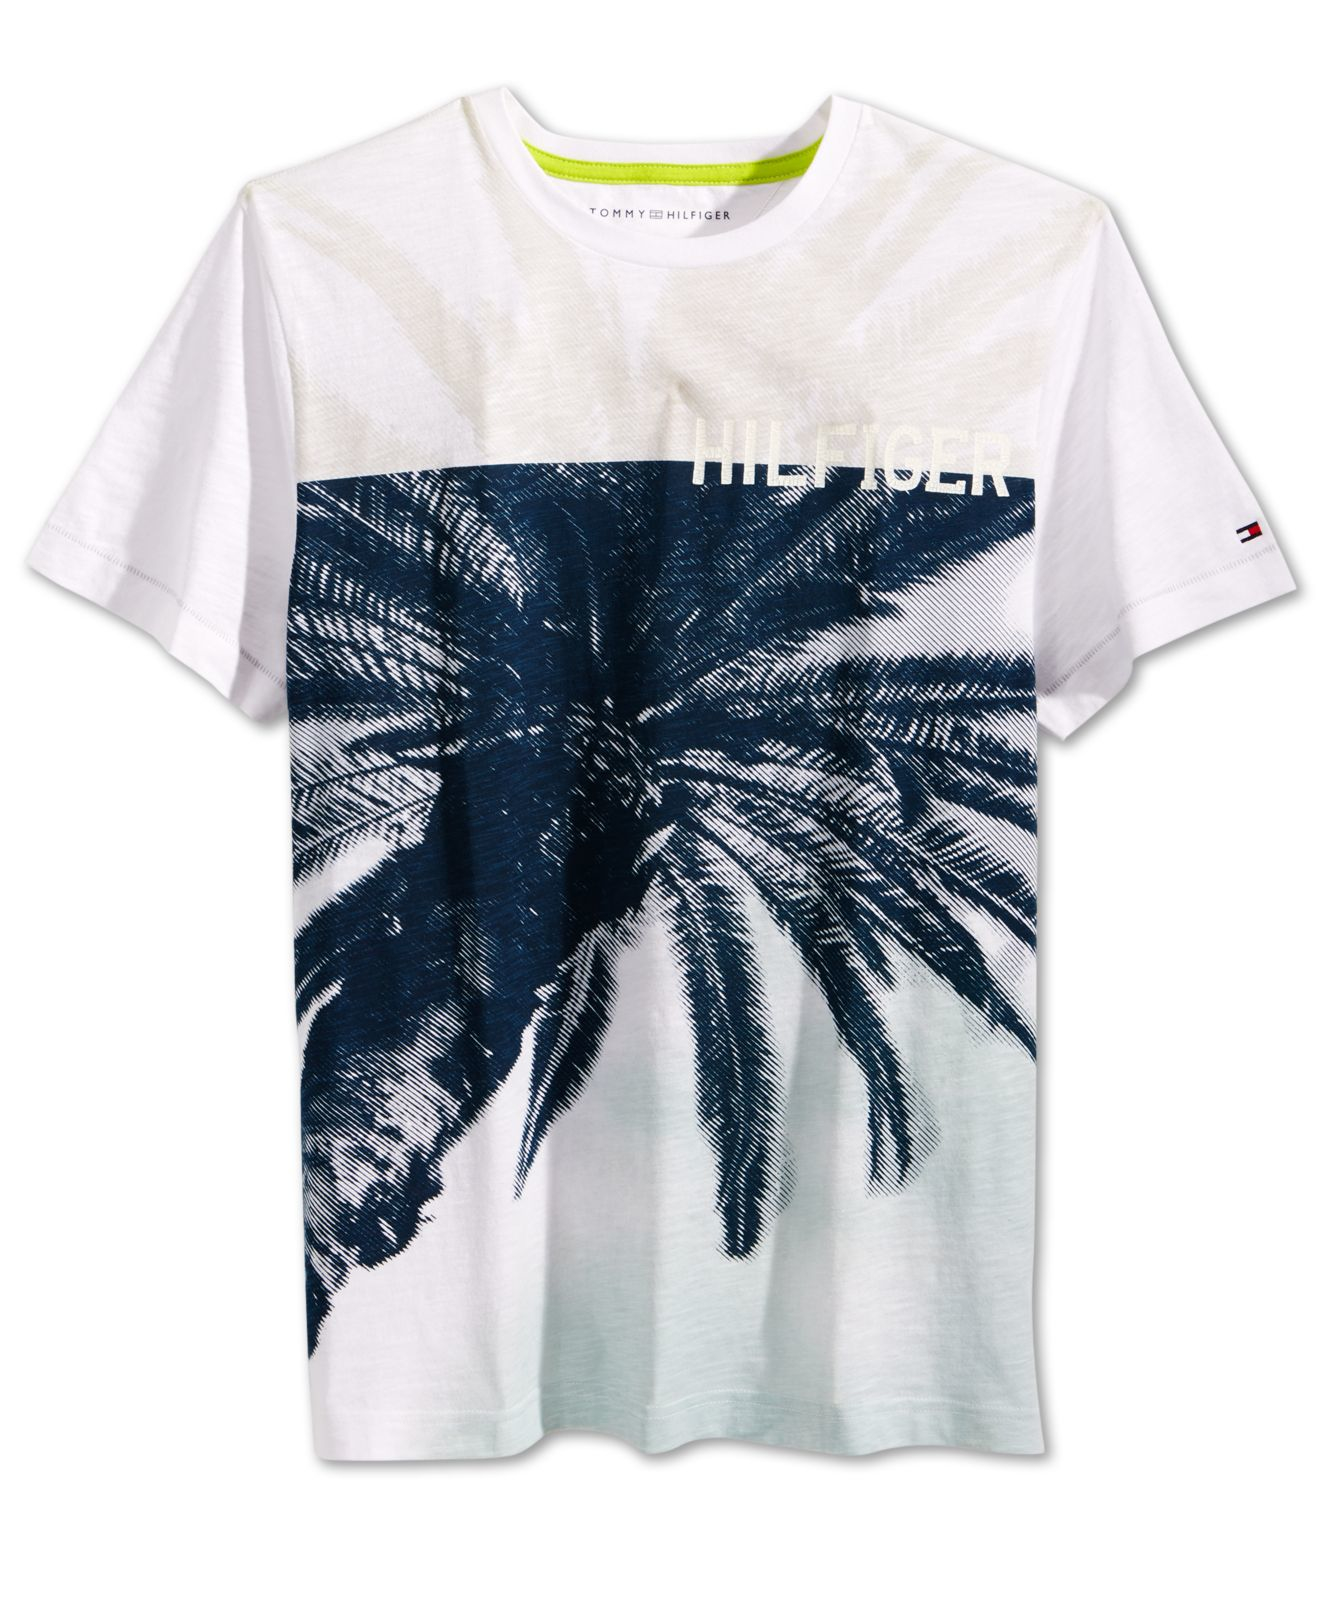 a5754273a Lyst - Tommy Hilfiger Palmnado Graphic-print T-shirt in White for Men